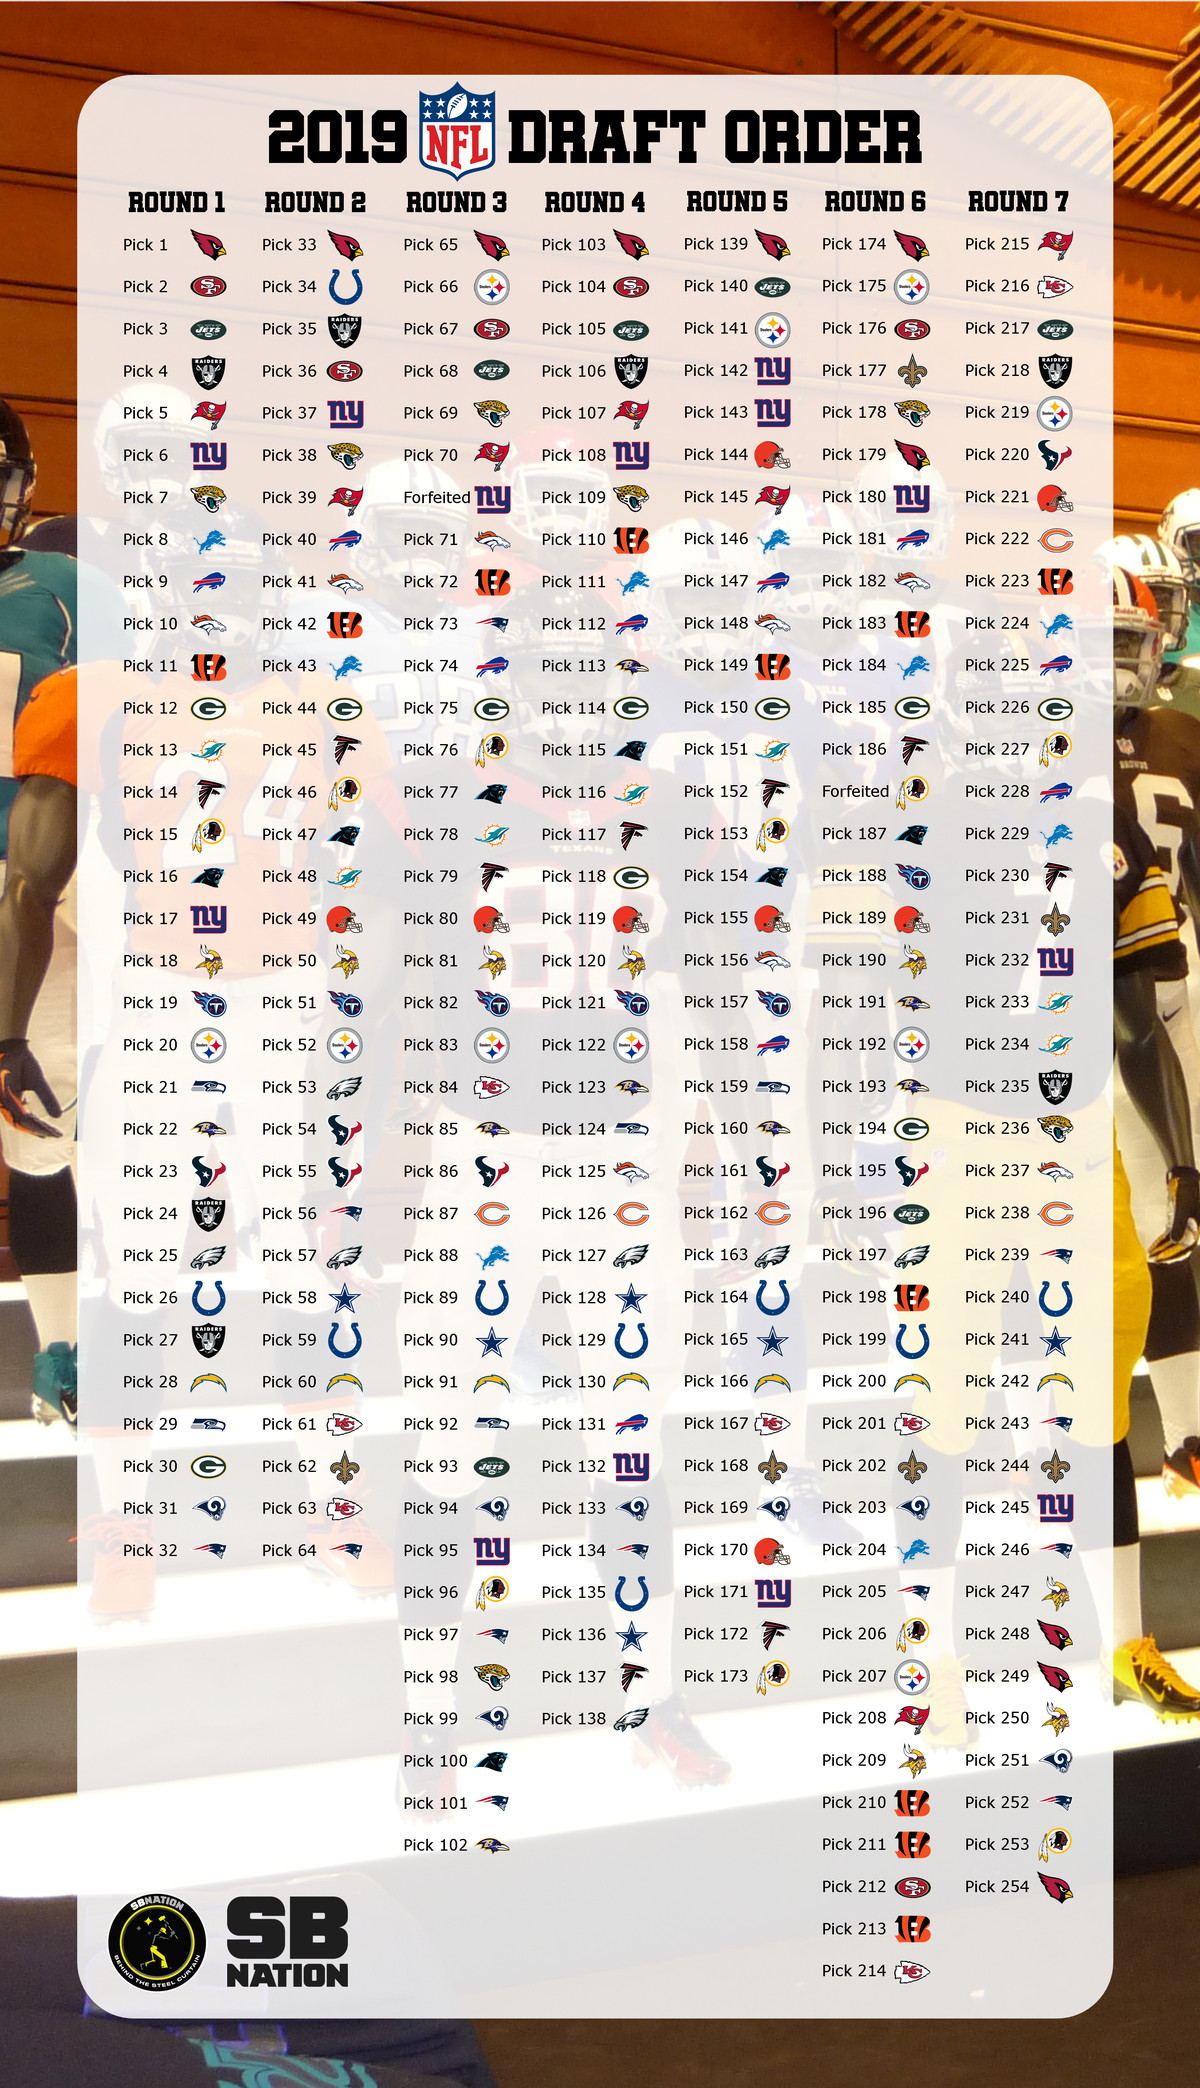 2019 Nfl Draft Schedule 2019 NFL Draft: The complete and updated 7 round draft order